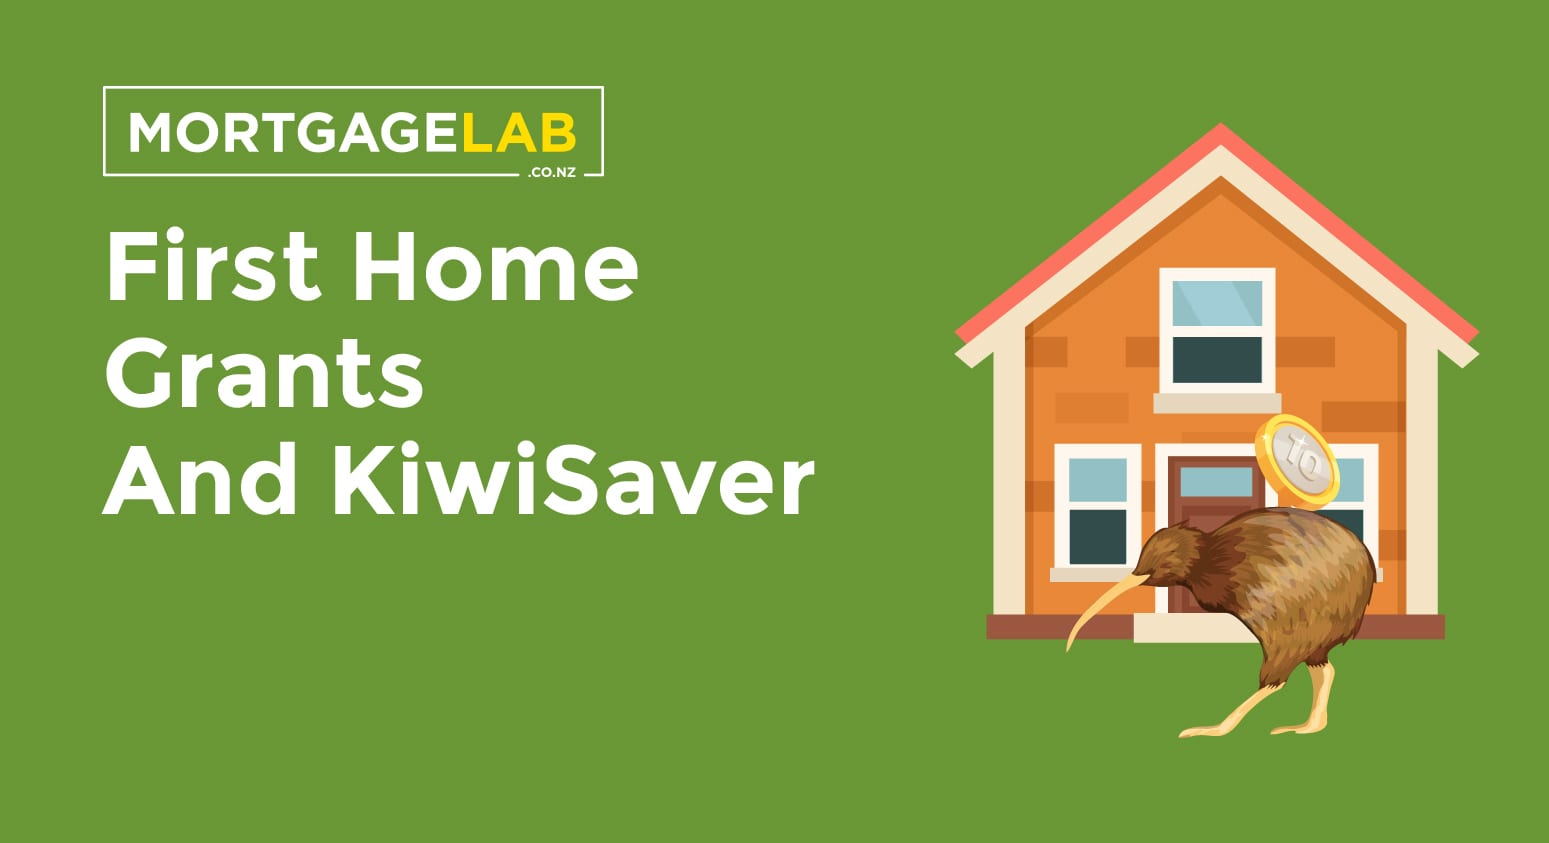 First Home Grants and KiwiSaver